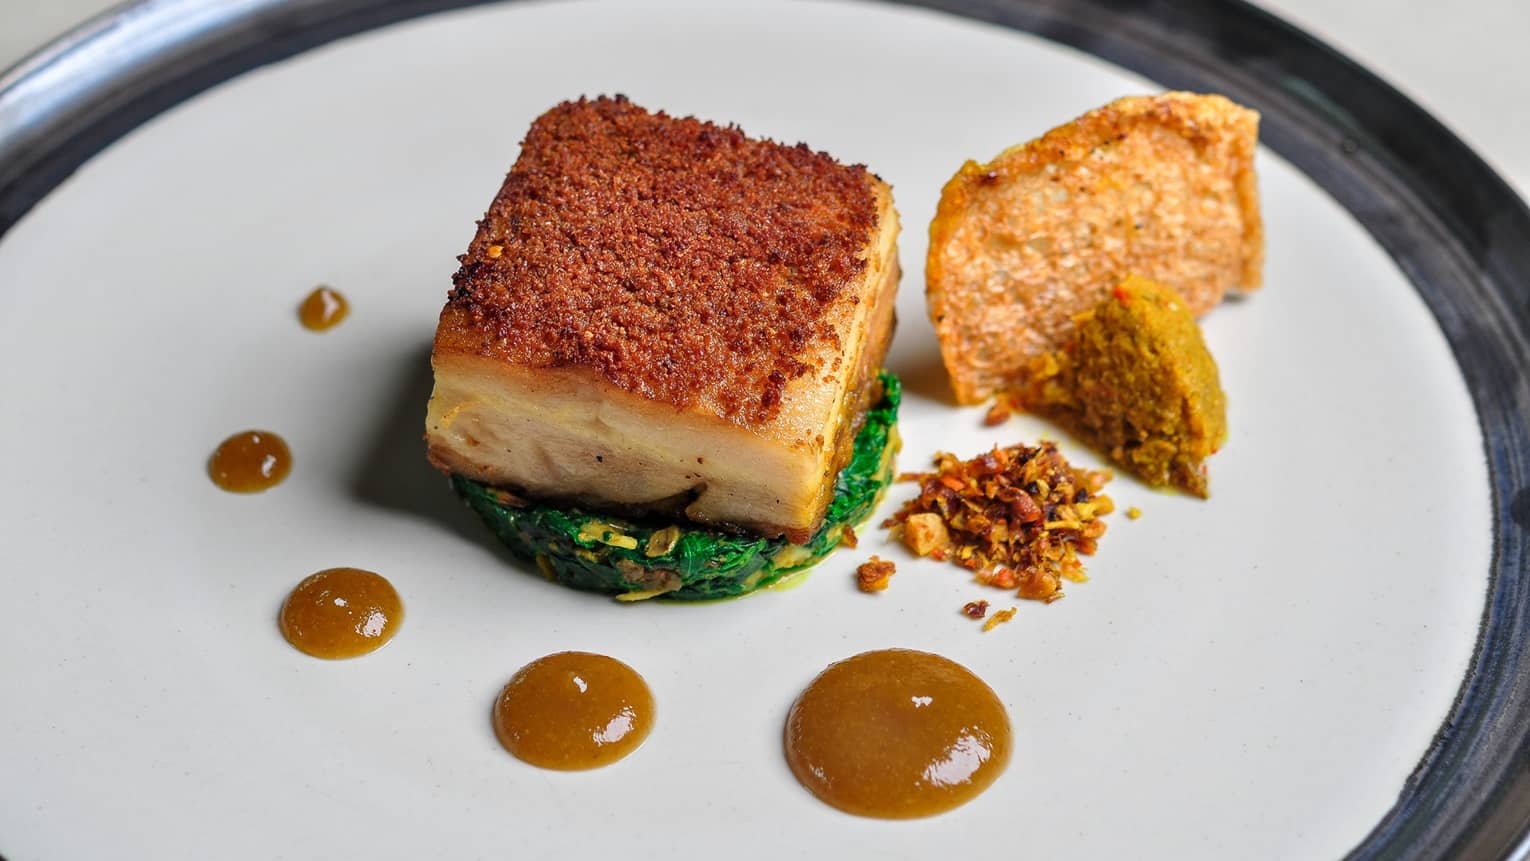 Babi Guling pork belly dish with crusted spice rub, sauteed pumpkin, dabs of orange sauce on white plate,